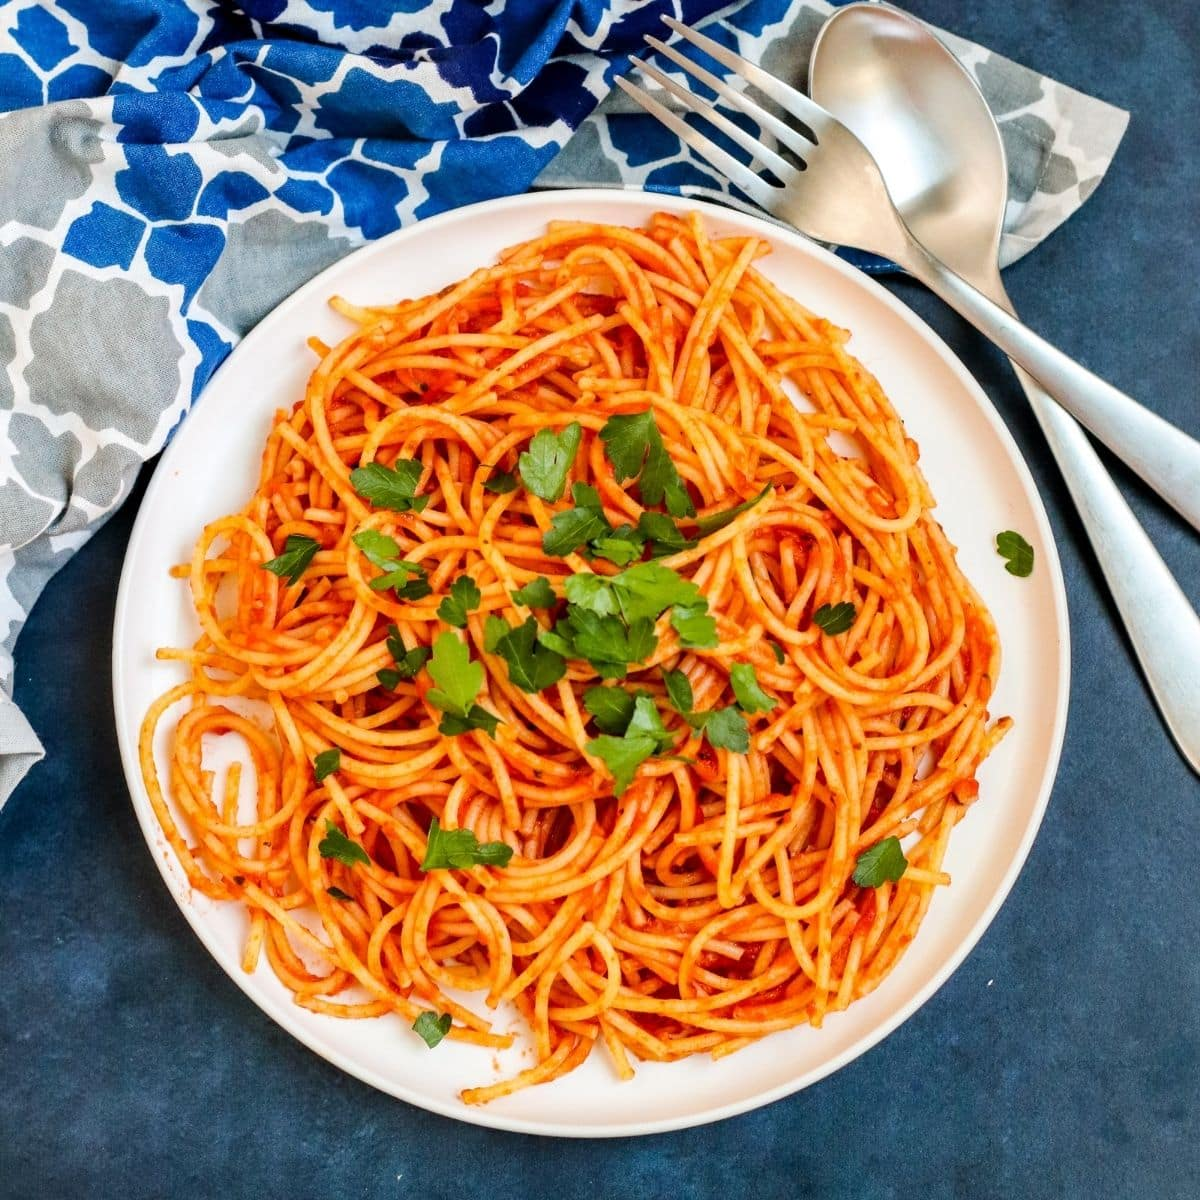 Bowl of spaghetti and tomato sauce garnished with fresh herbs